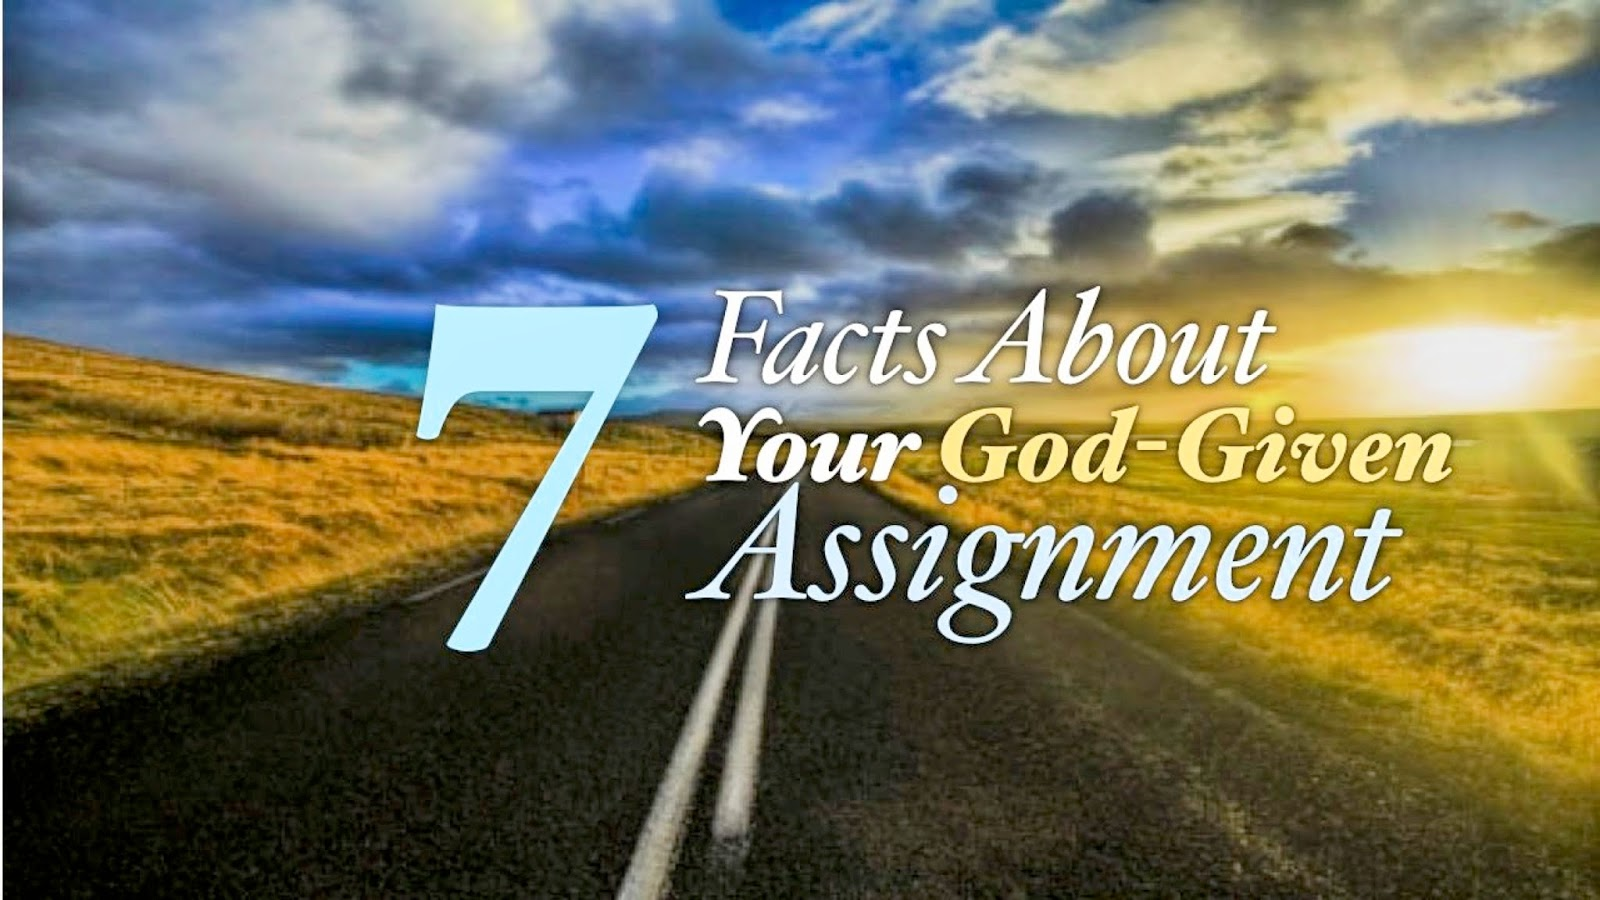 How do i know my assignment from god